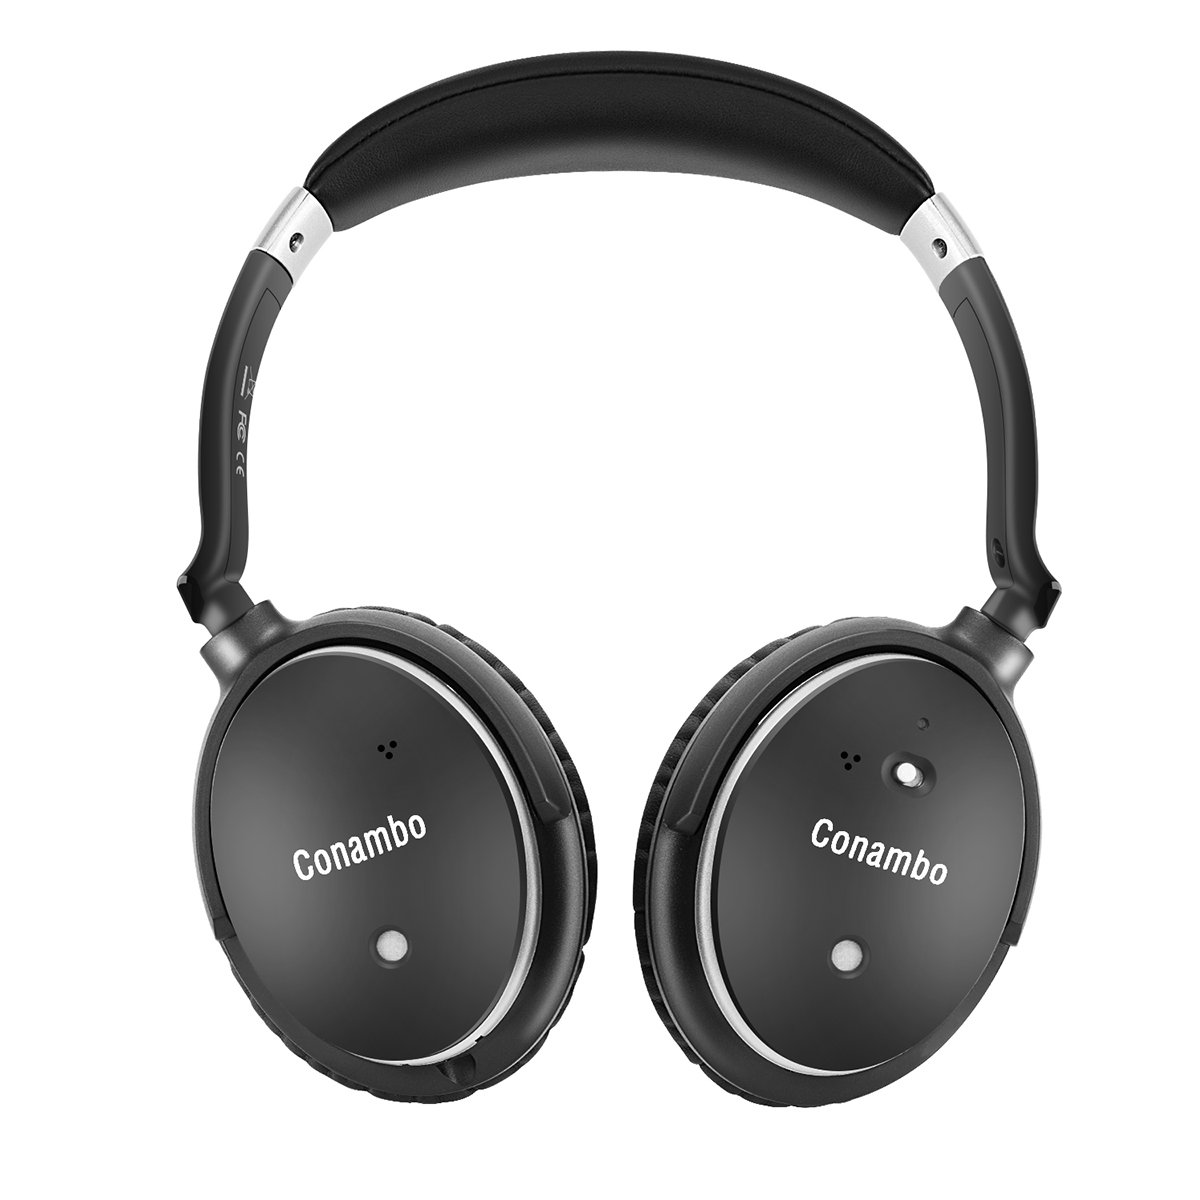 e3bc8c5060d Get Quotations · Active Noise Cancelling Bluetooth Headphones, Conambo  Foldable HiFi-Stereo Wireless Headphones Over-Ear